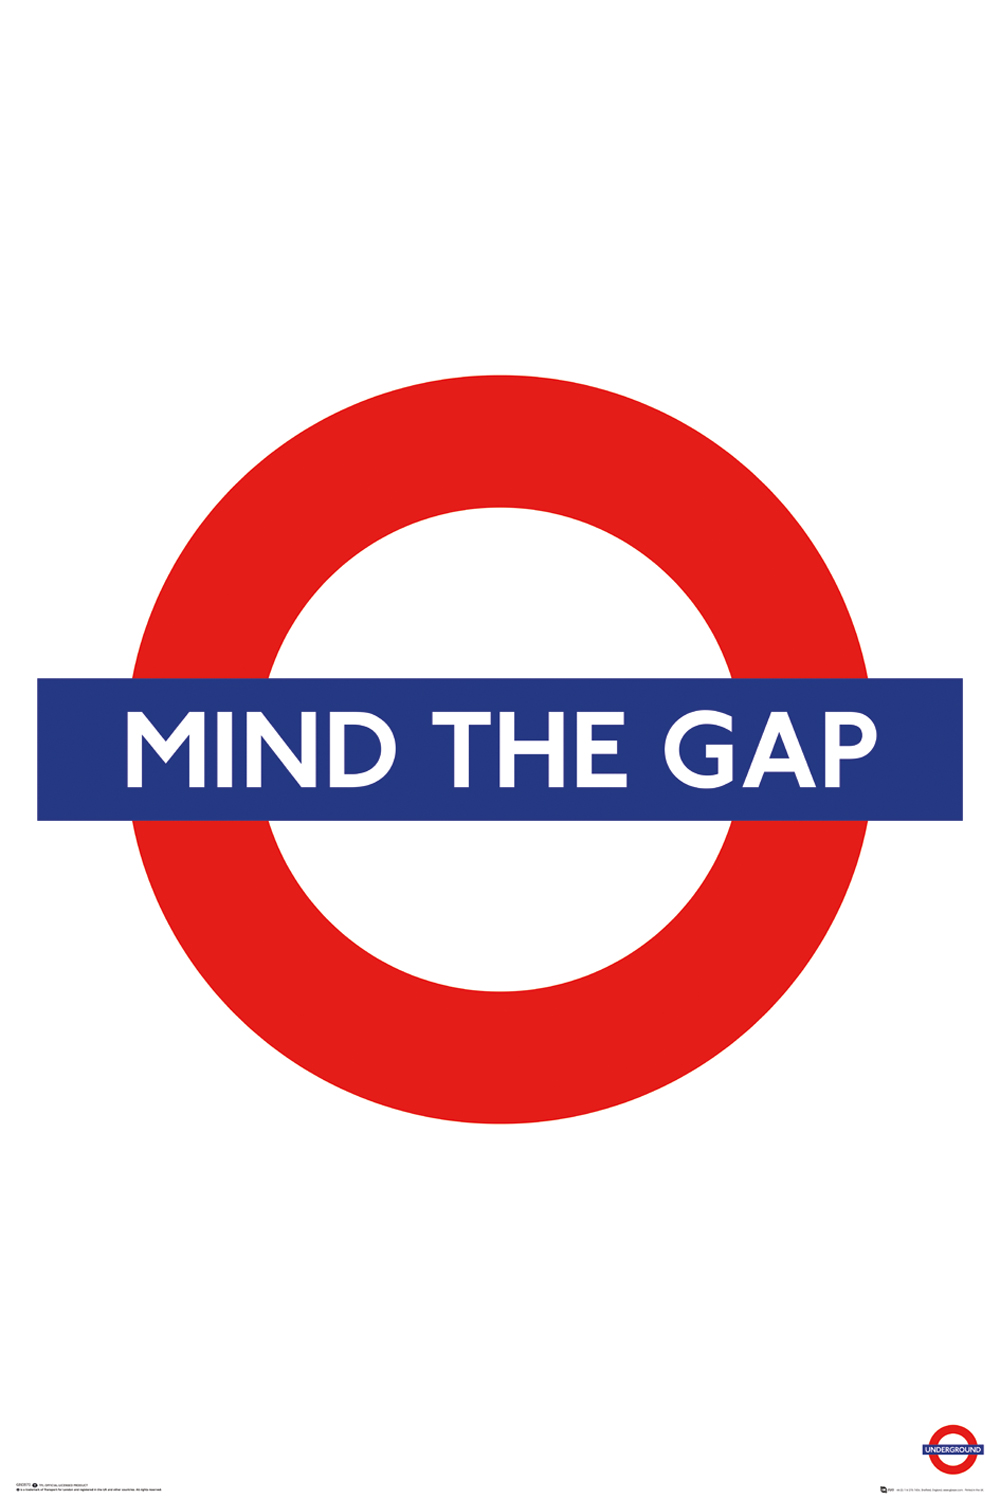 TFL mind the gap maxi poster